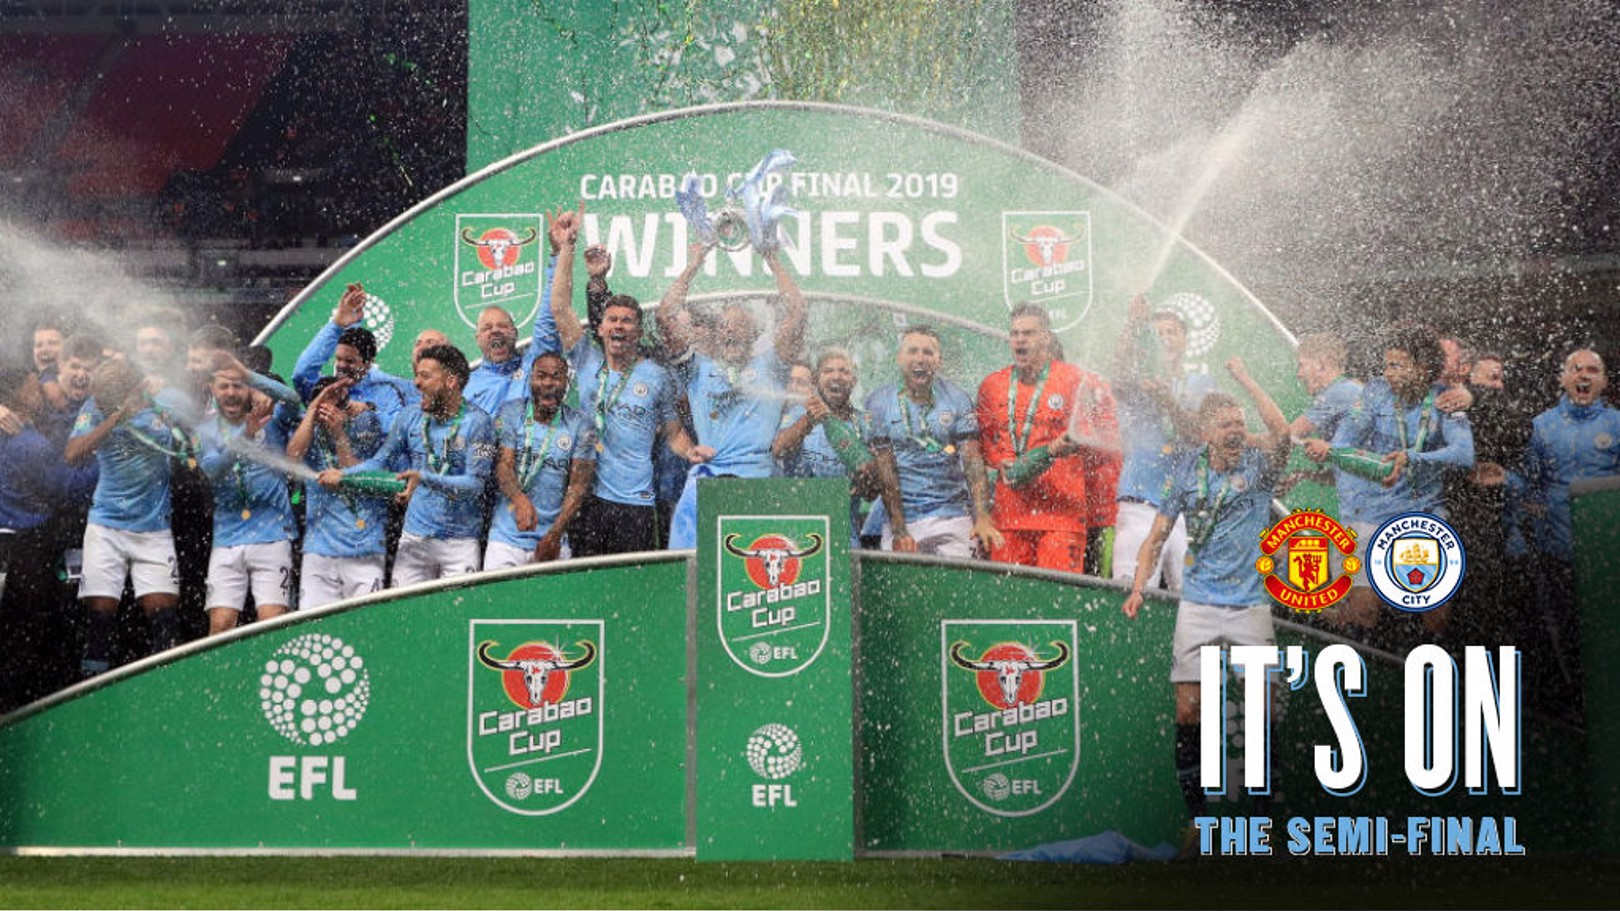 City's formidable Carabao Cup record